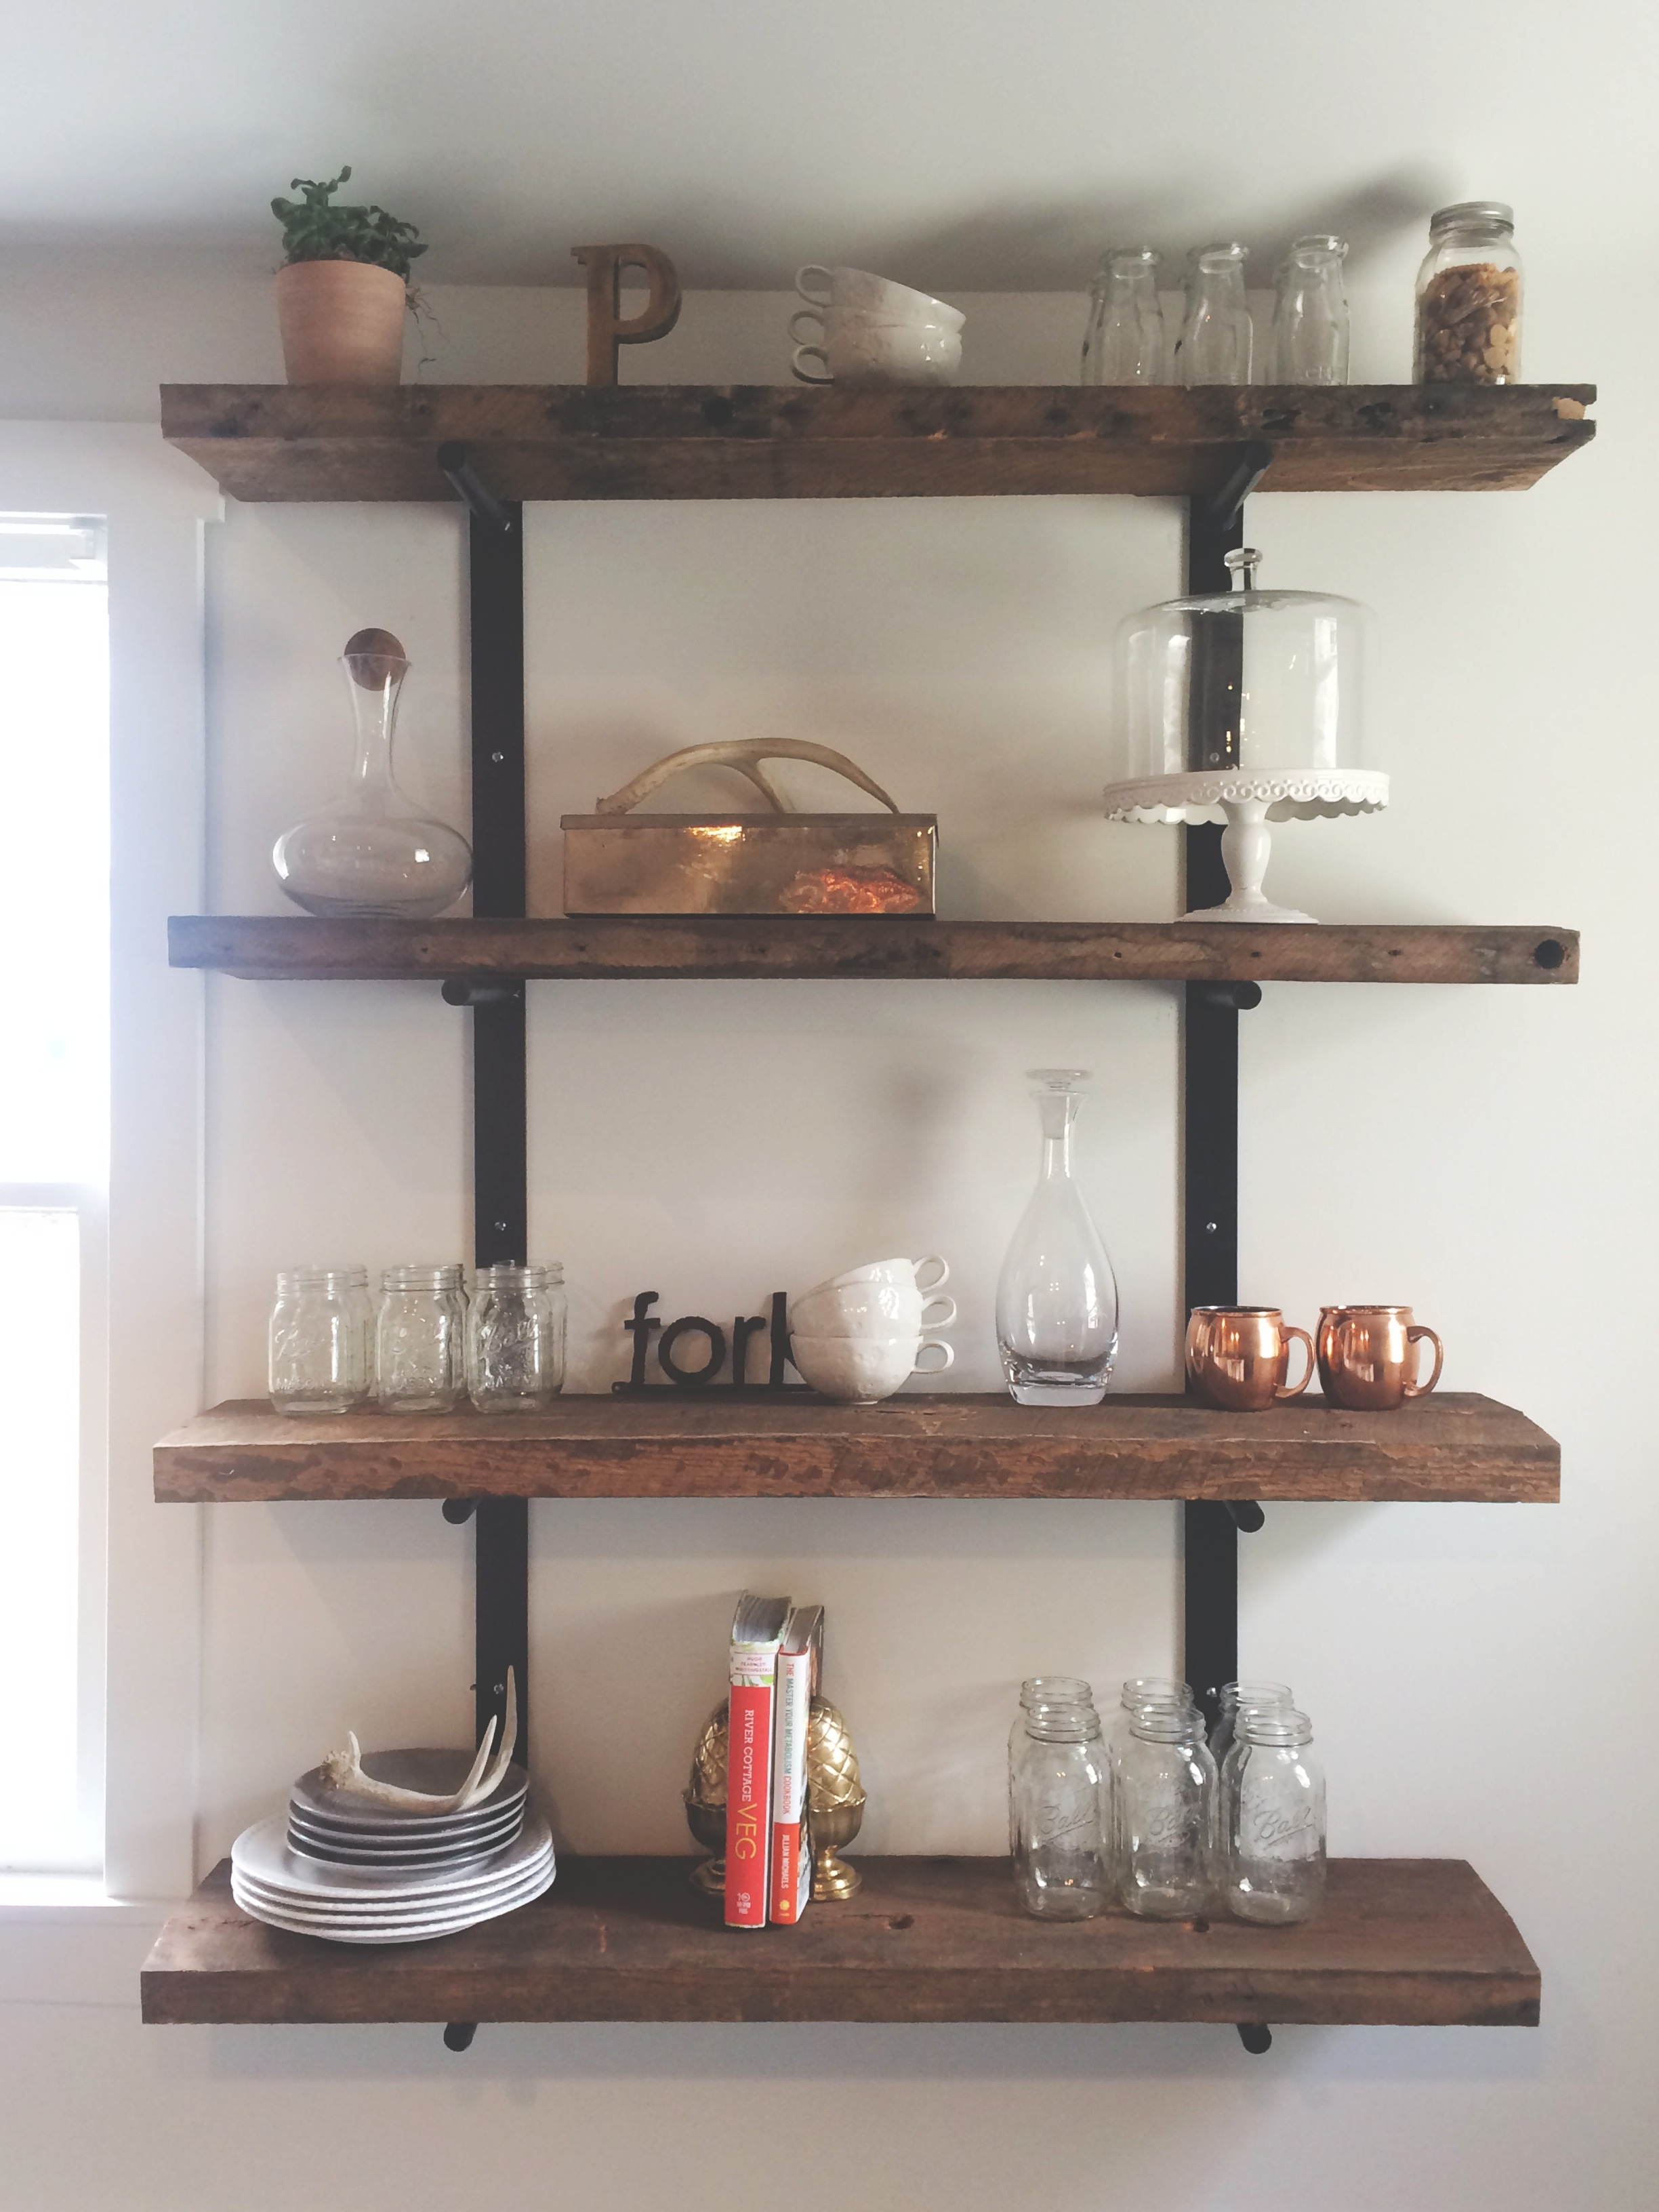 Phil and I designed and built these shelves for our old house. They are the perfect addition in our new kitchen! We received so many wonderful wedding gifts but ran out of room for storage-- these saved us and also make for fun decor.